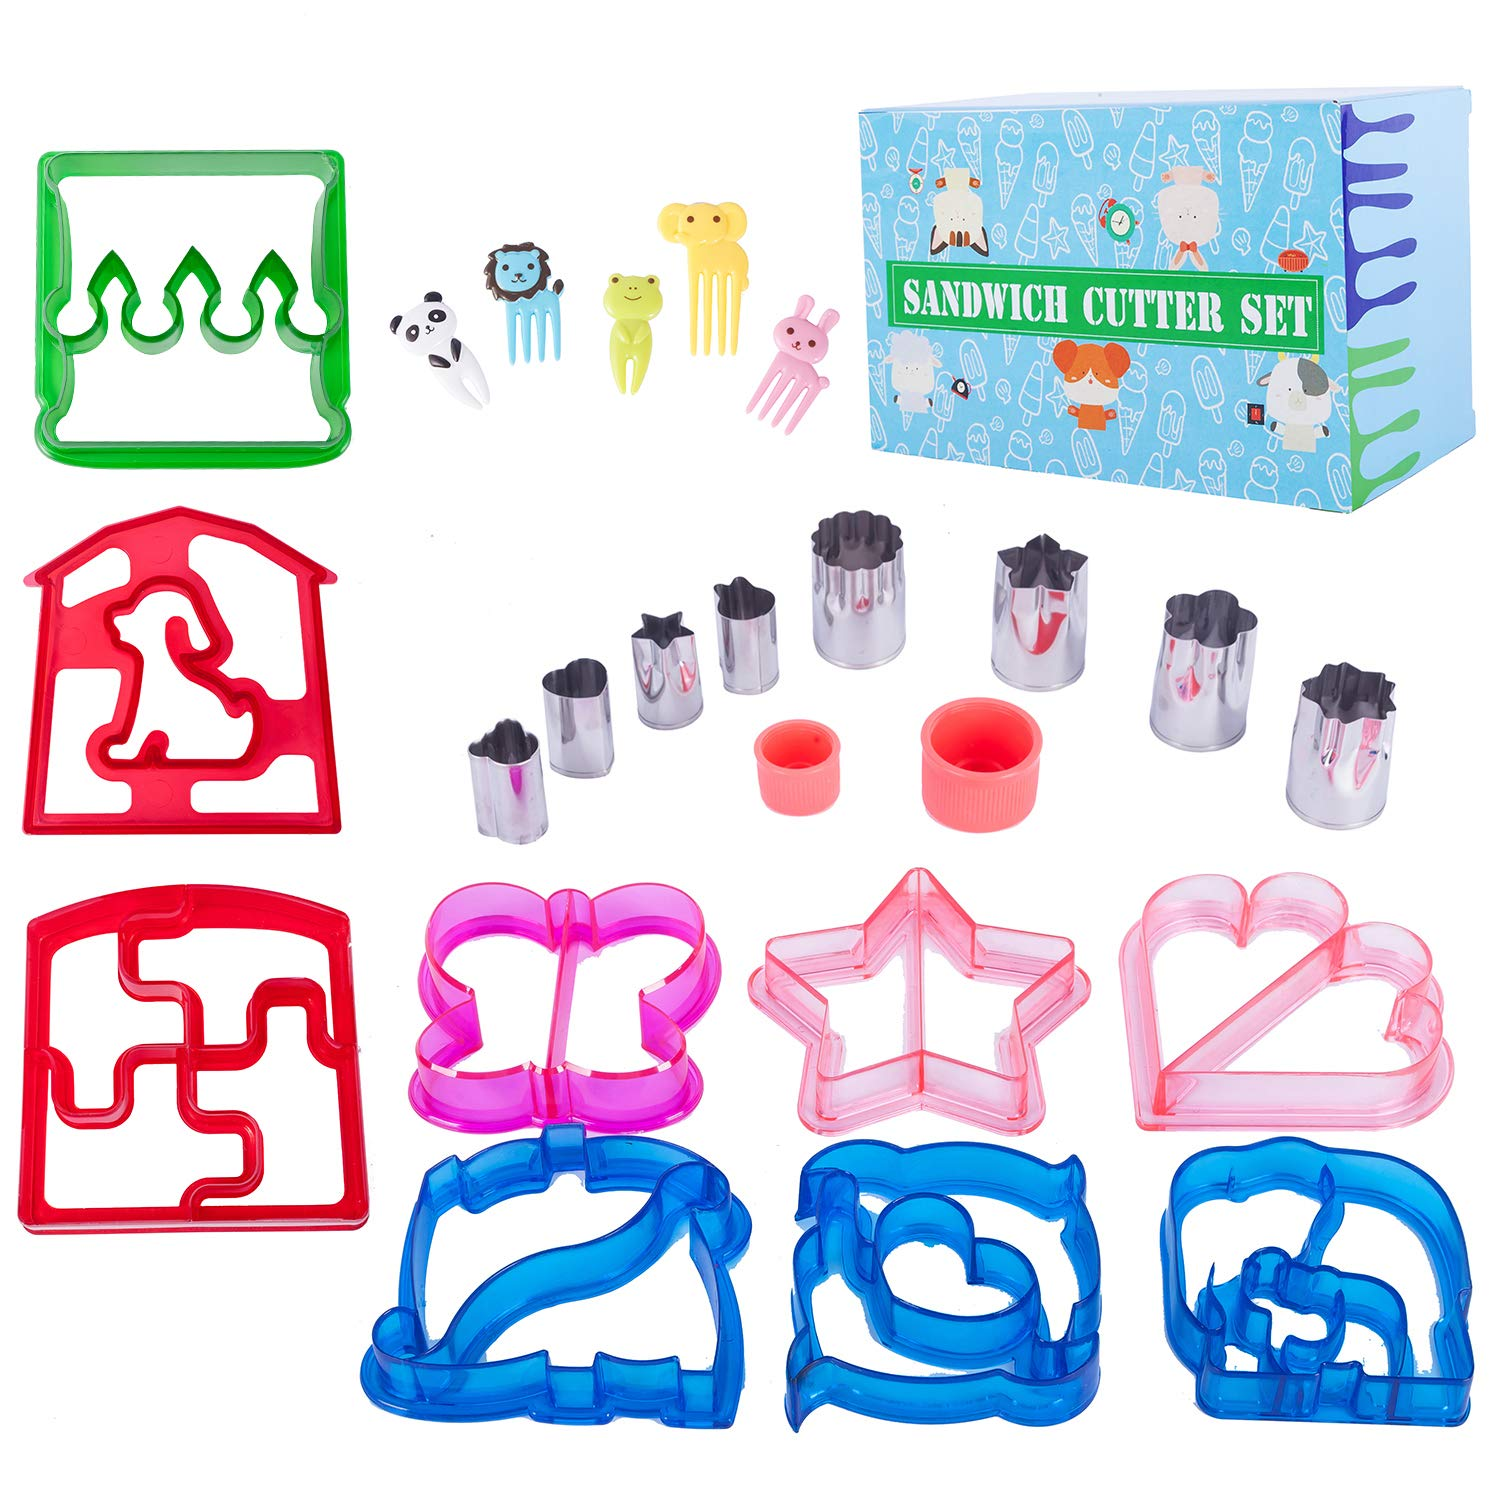 JONYEE Sandwich Cutters for Kids - 9 Fun Lunch Cutters with Free 8 Stainless Steel Vegetables Fruit Shapes Cookie Cutters Bread Crust Shaper for Biscuits Pancakes and 5 Animal Food Picks